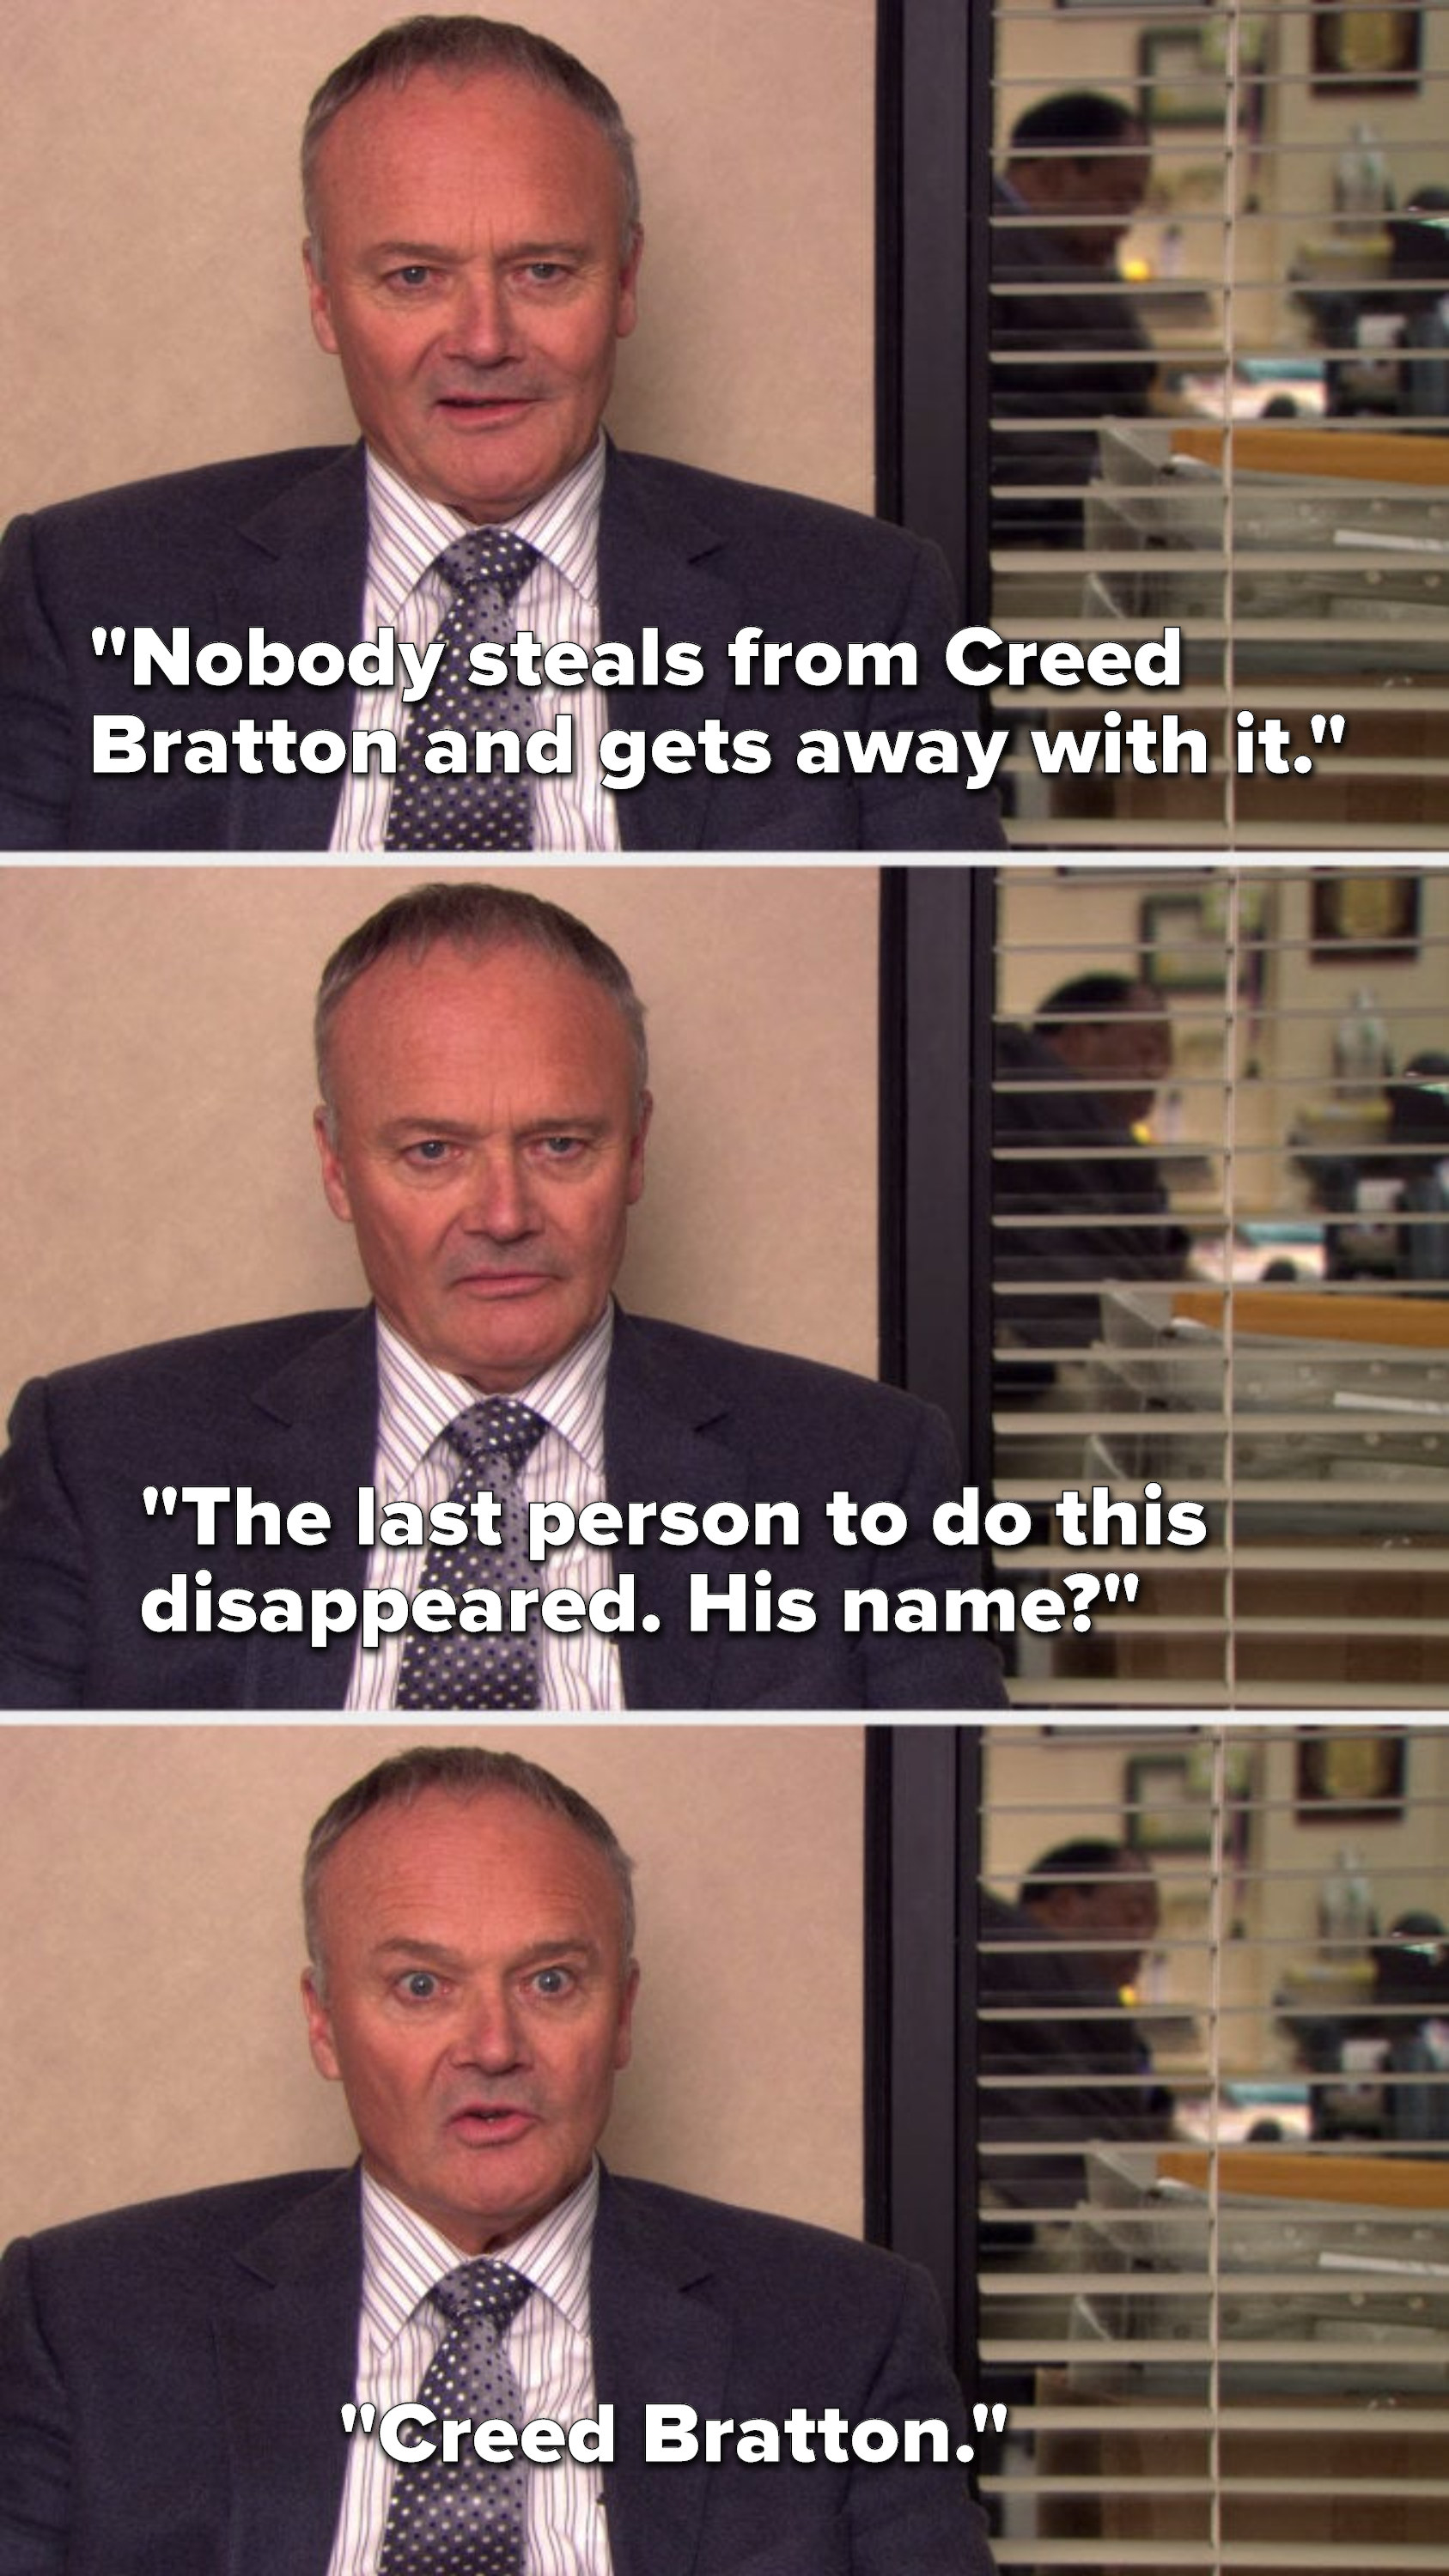 """Creed says, """"Nobody steals from Creed Bratton and gets away with it, the last person to do this disappeared, his name, Creed Bratton"""""""